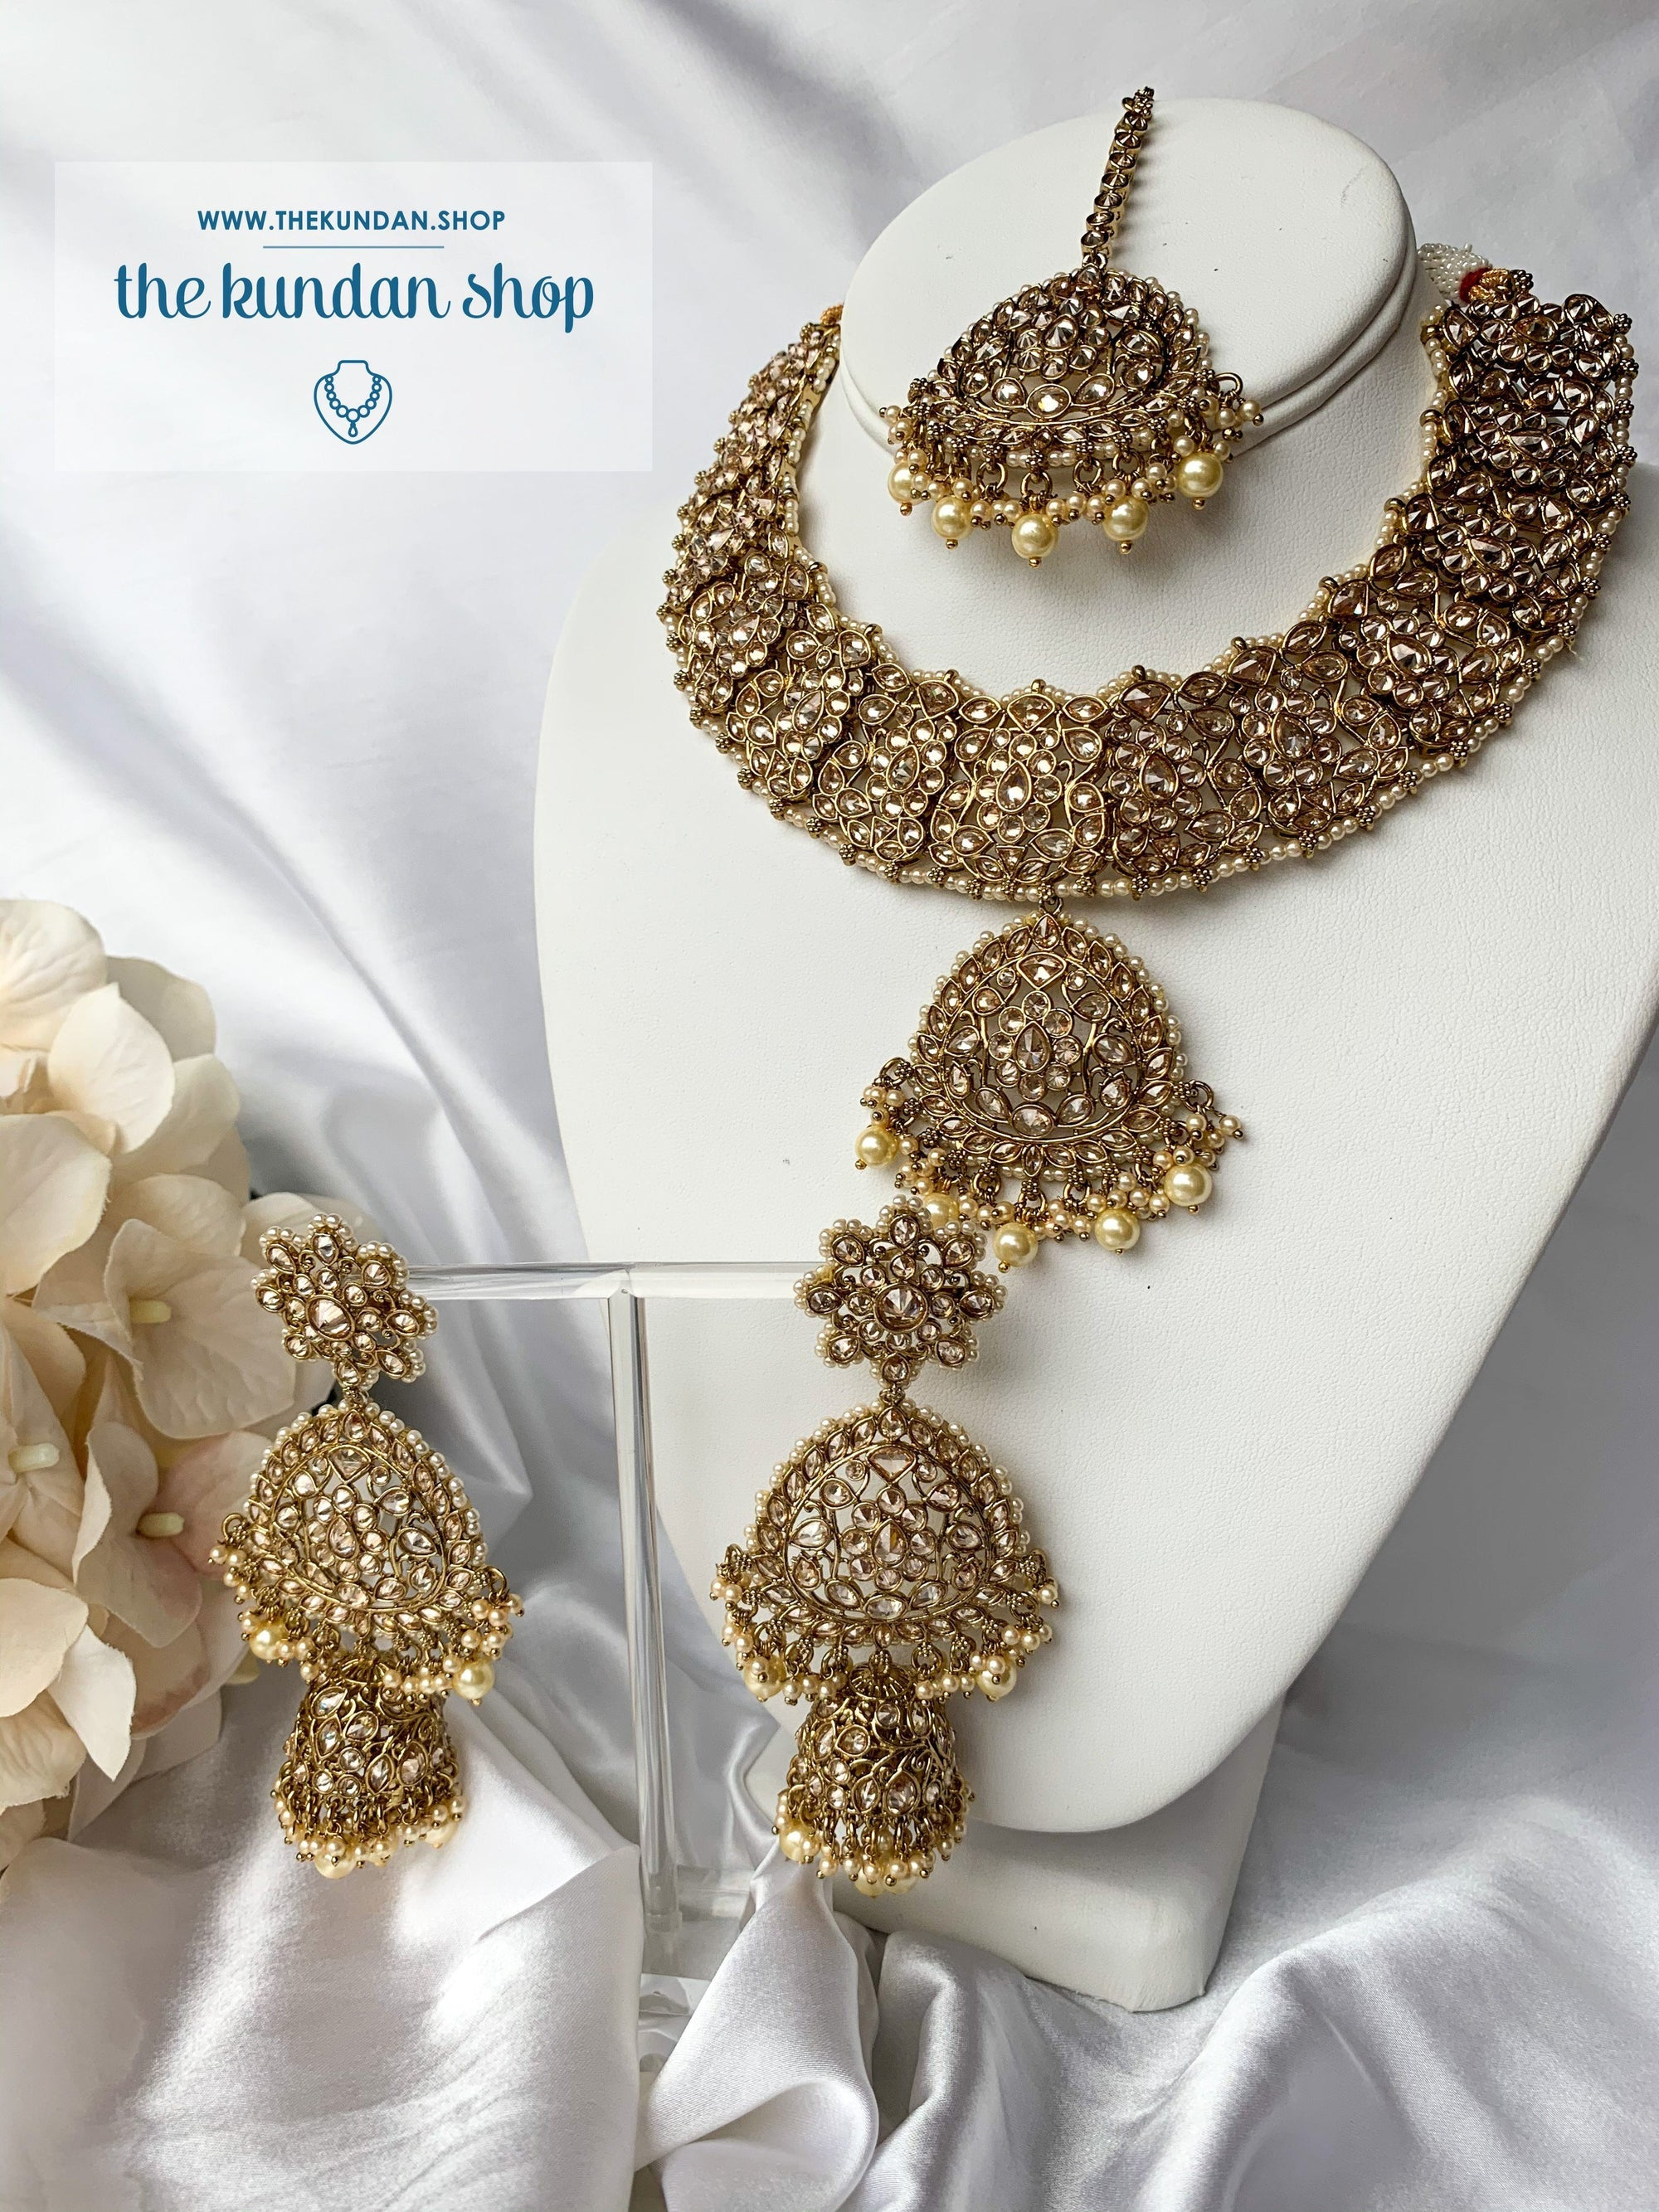 Expressive in Pearl Necklace Sets THE KUNDAN SHOP